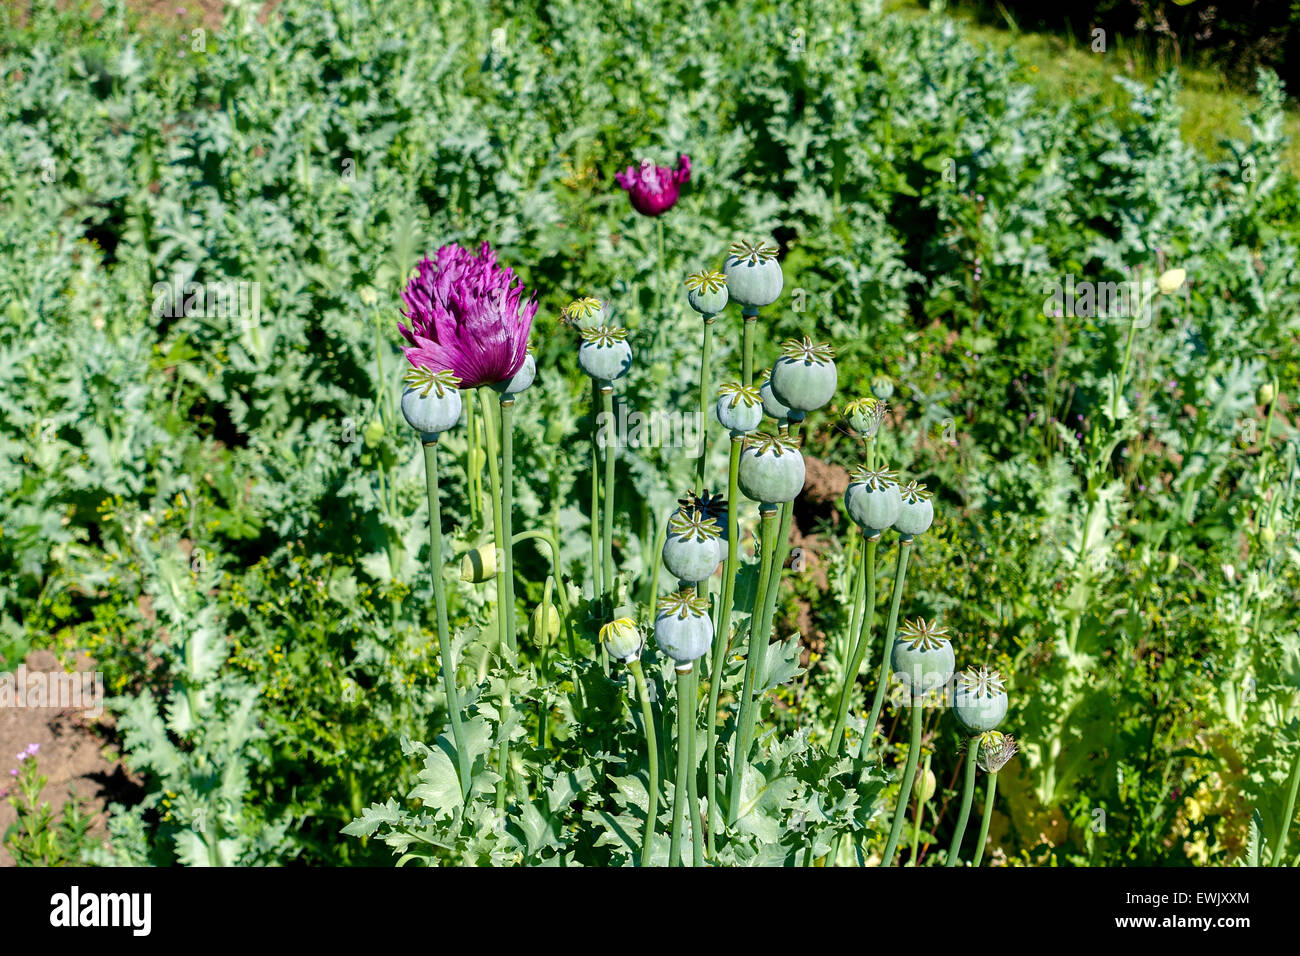 Poppy flowers and seed heads opium drugs war on drugs heroin poppy flowers and seed heads opium drugs war on drugs heroin mightylinksfo